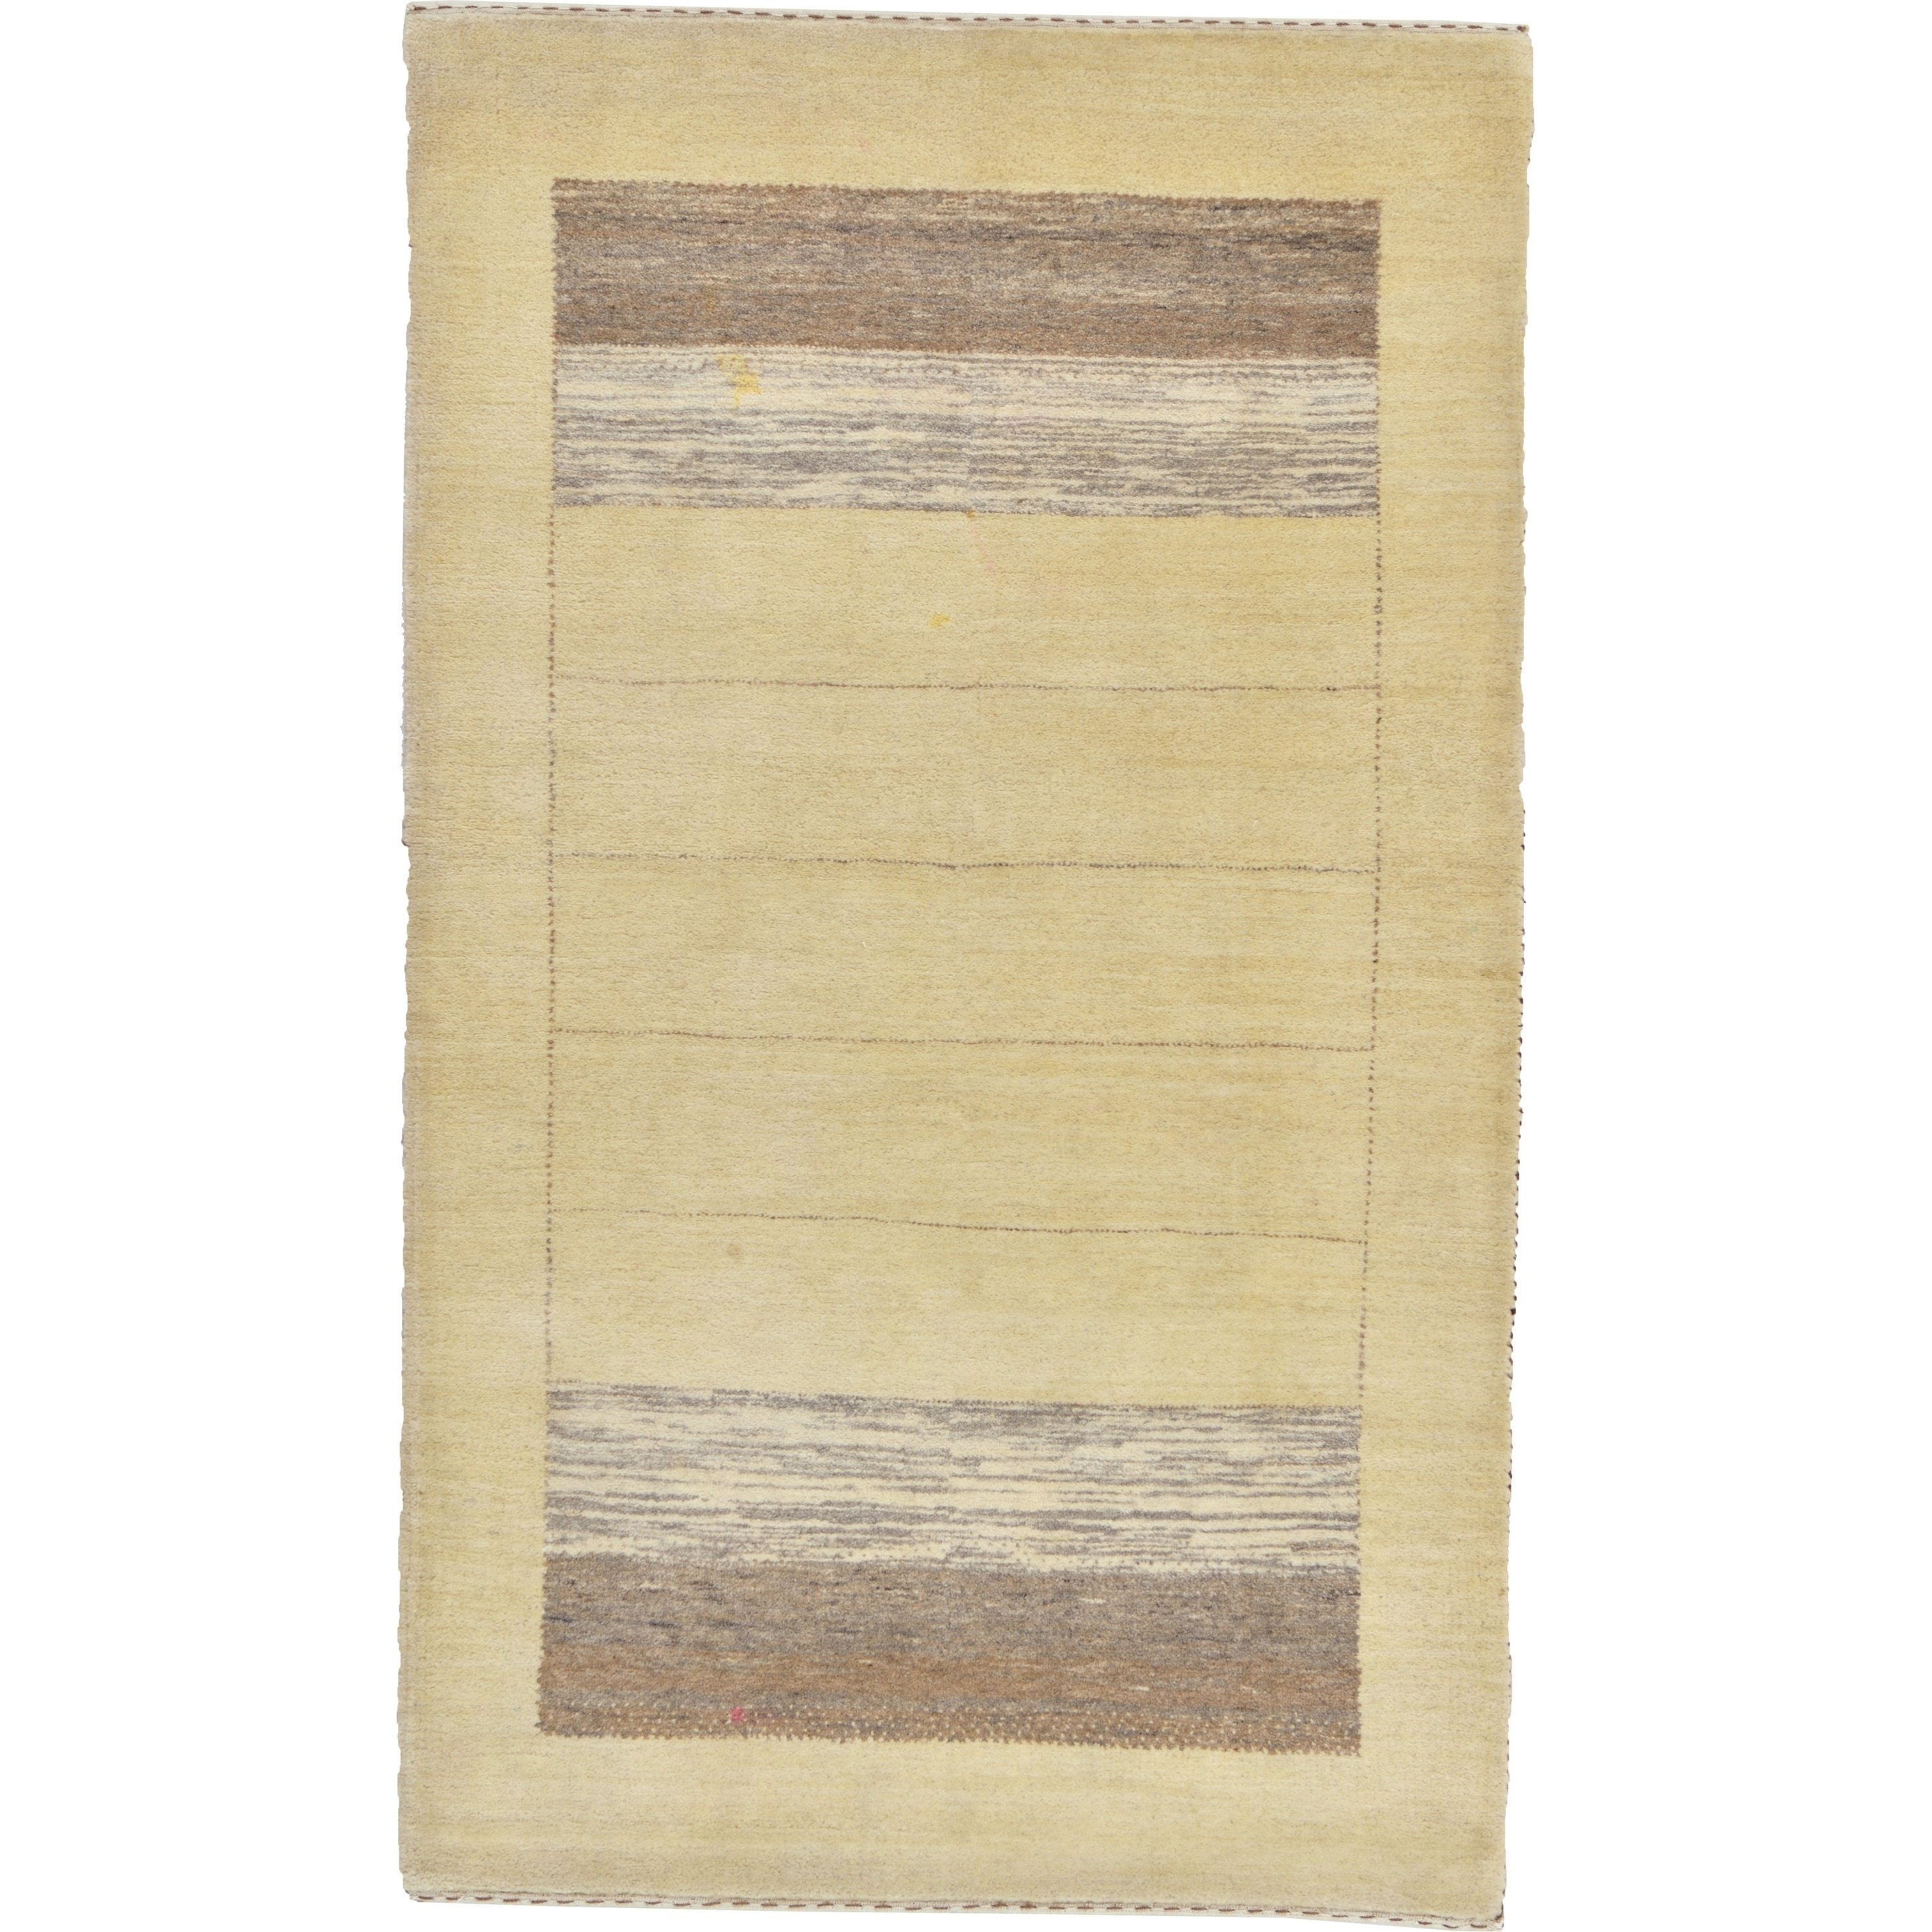 Hand Knotted Kashkuli Gabbeh Wool Area Rug - 3 2 x 5 3 (Cream - 3 2 x 5 3)